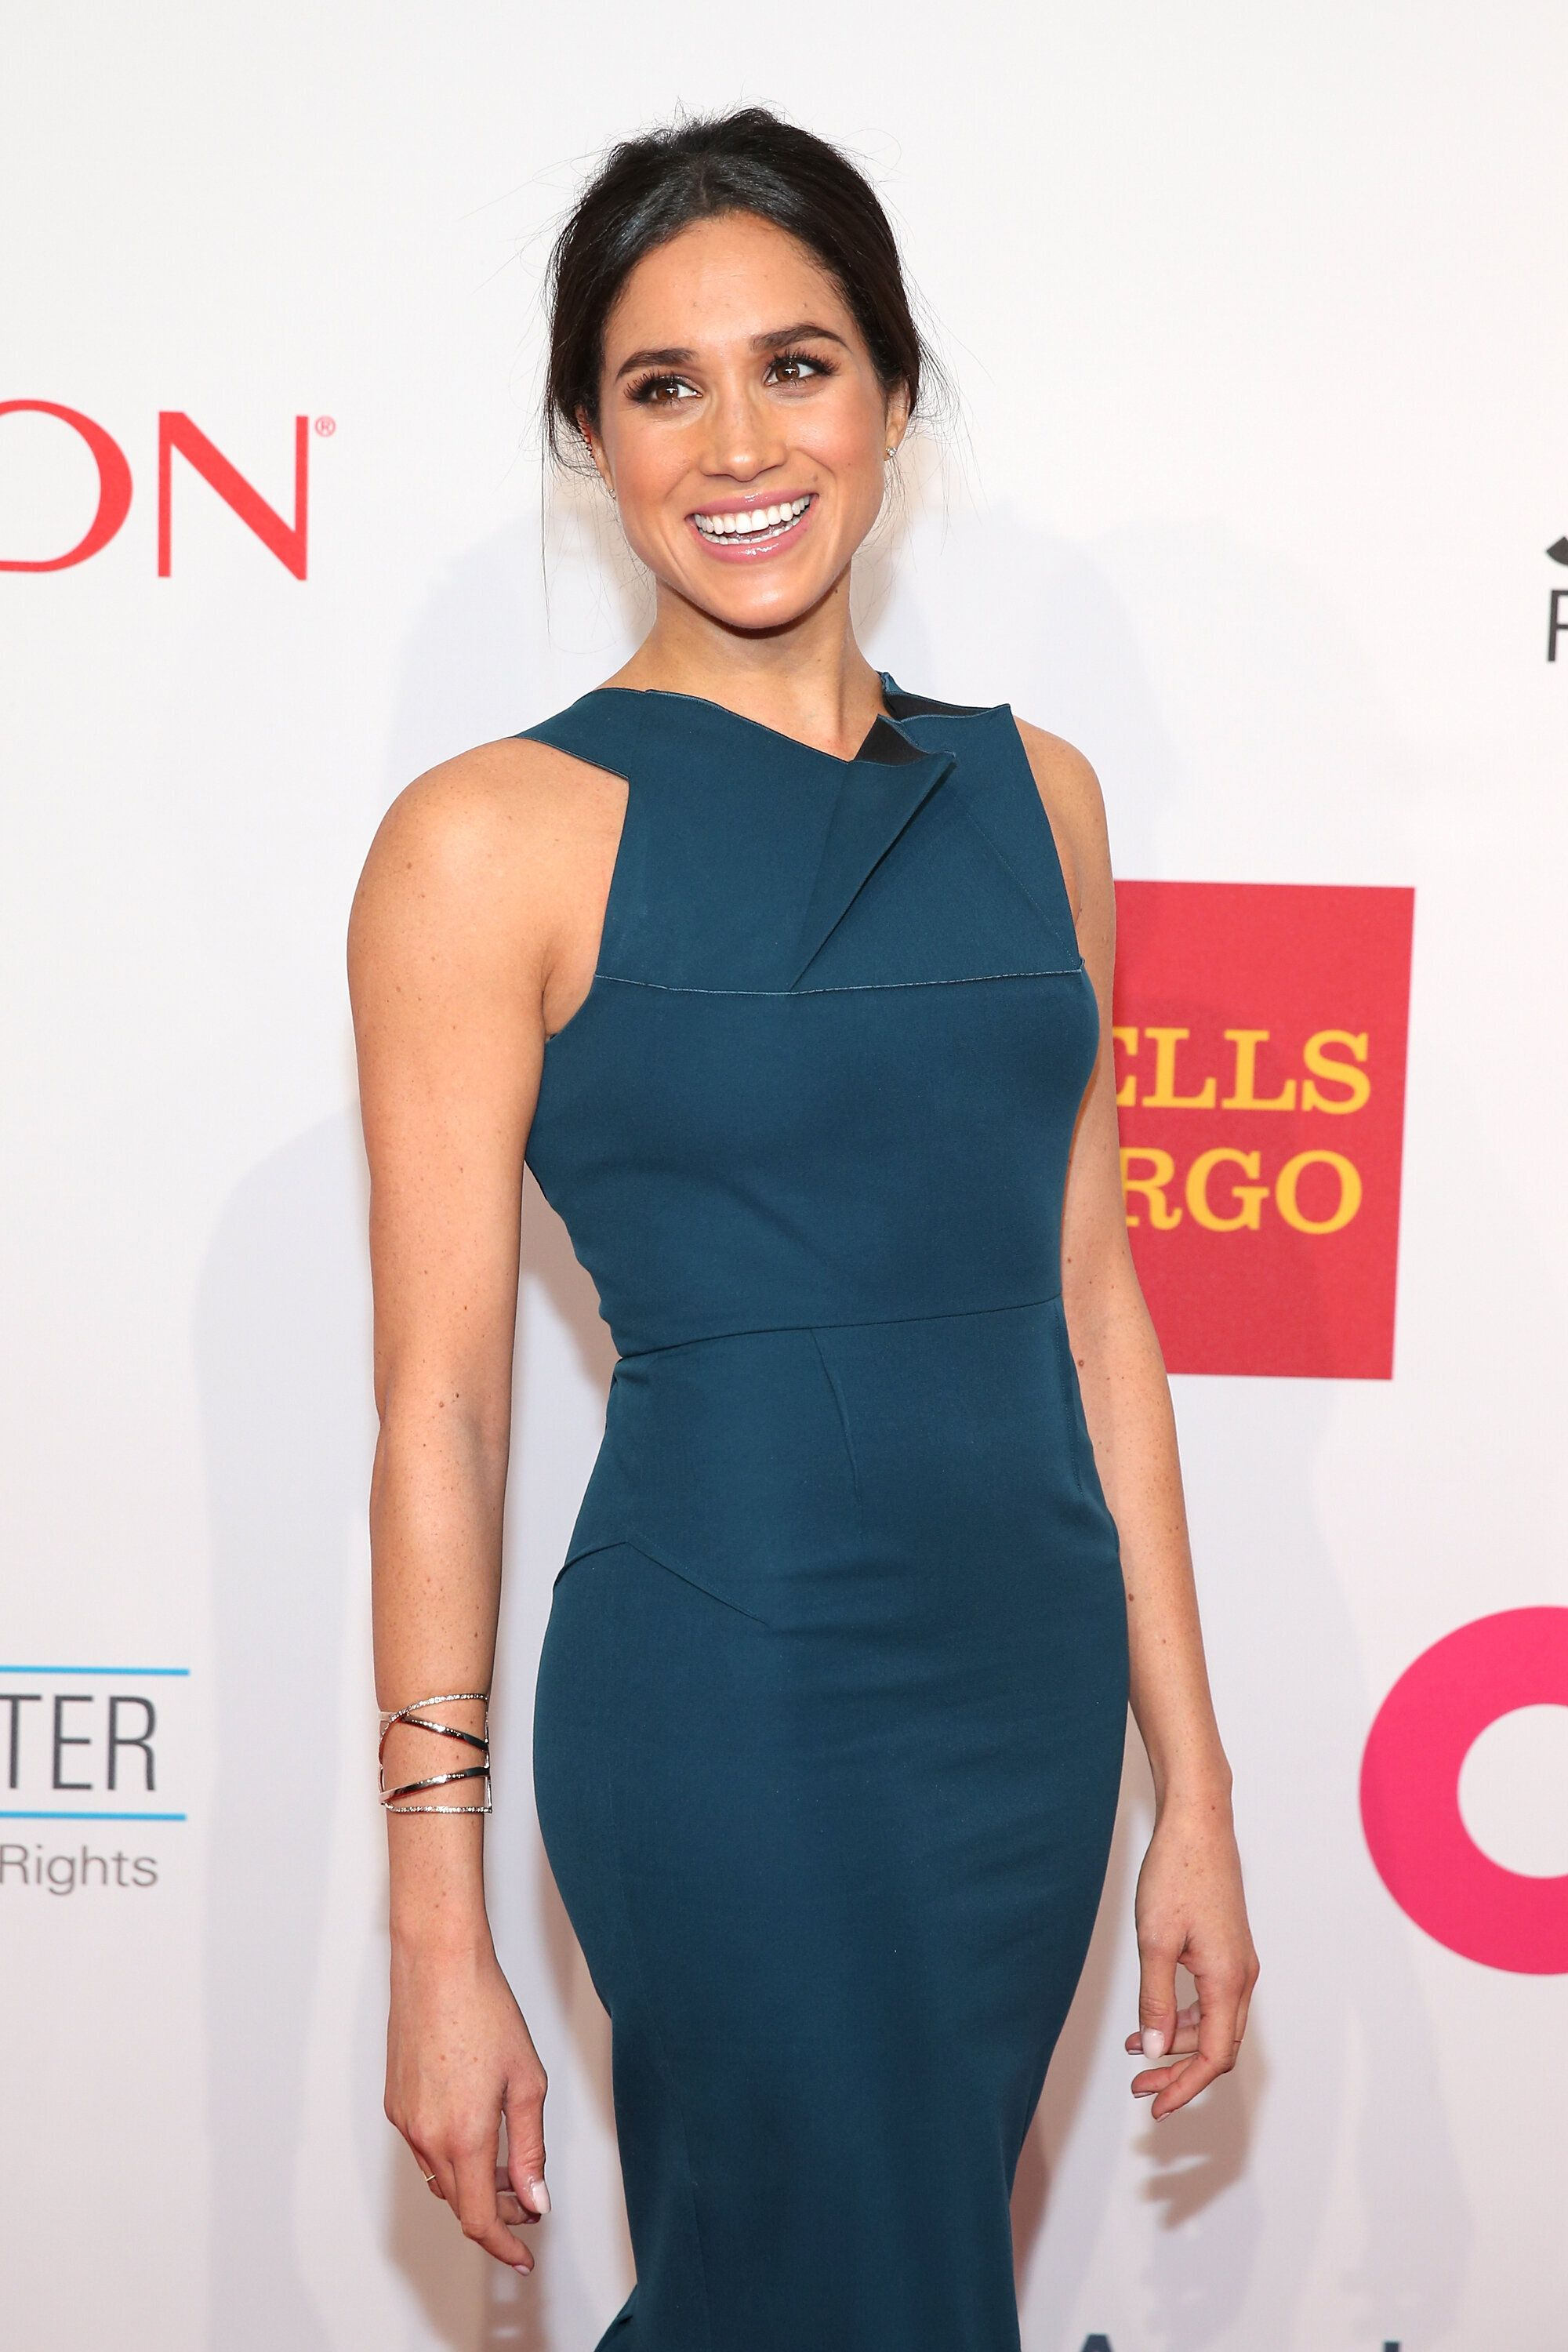 Meghan attends the Elton John AIDS Foundation benefit at Cipriani Wall Street on Oct. 28, 2014, in New York City.